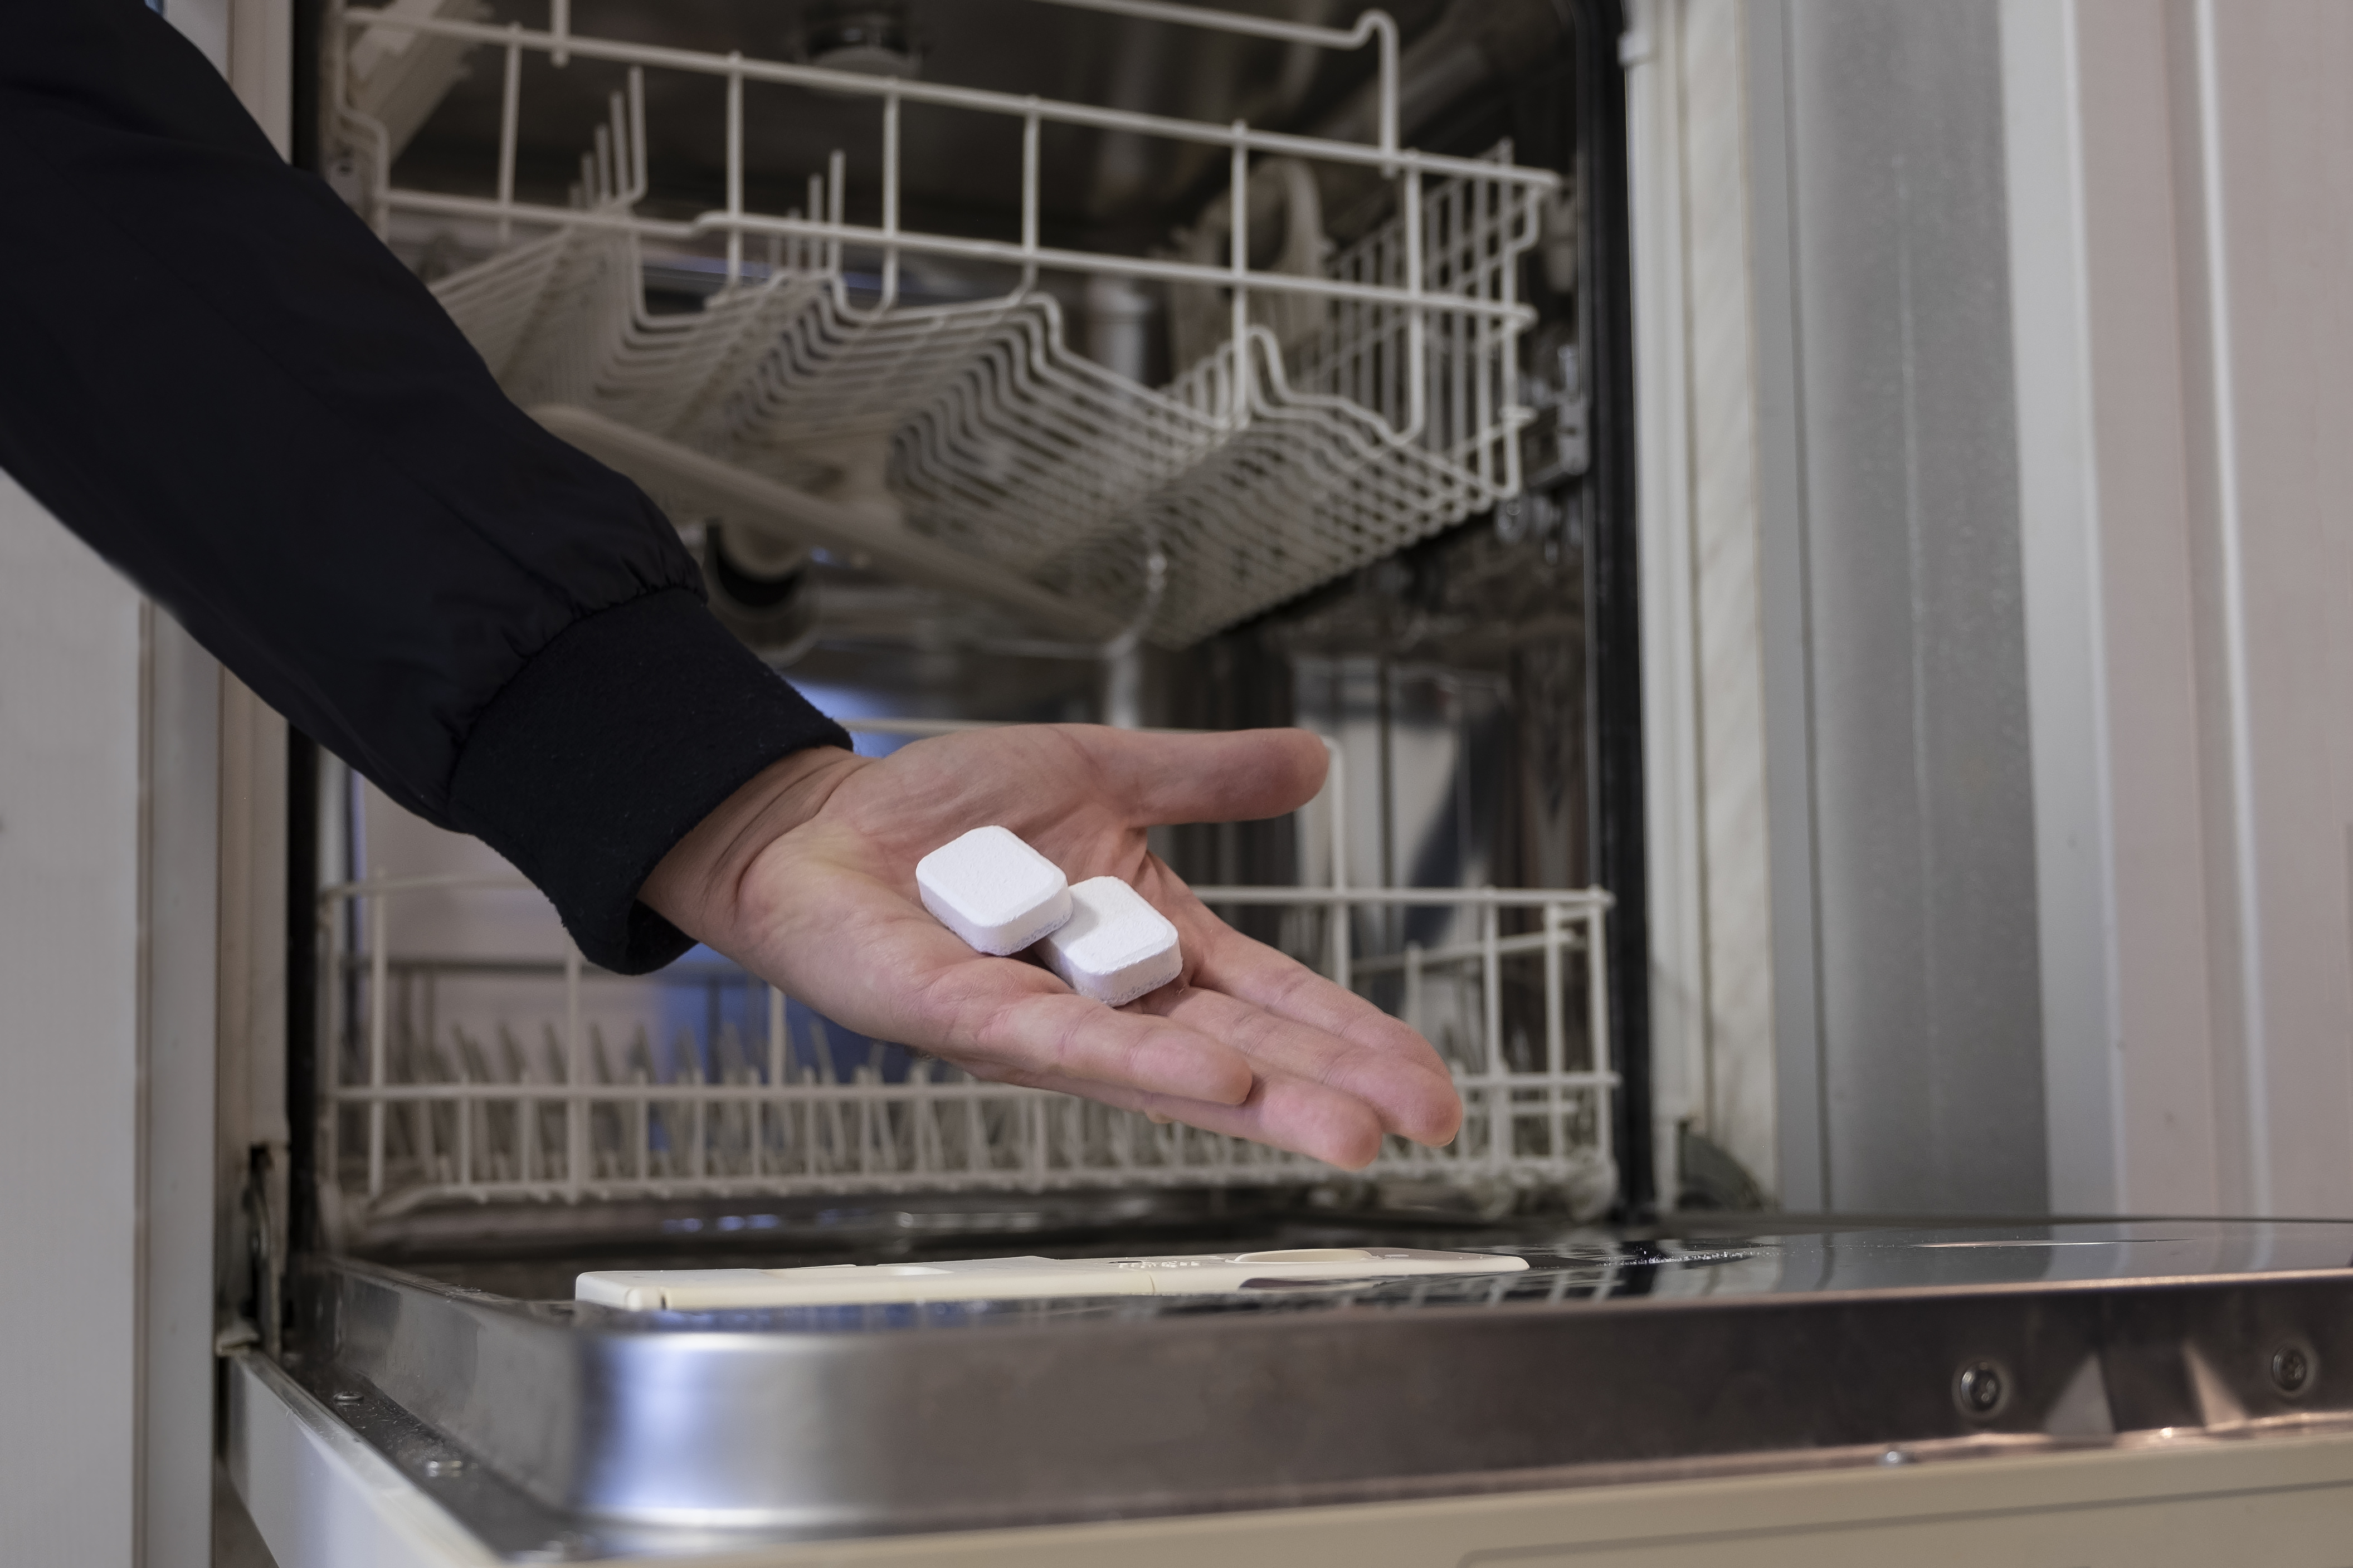 How to Convert a Portable Dishwasher to an Under-Counter